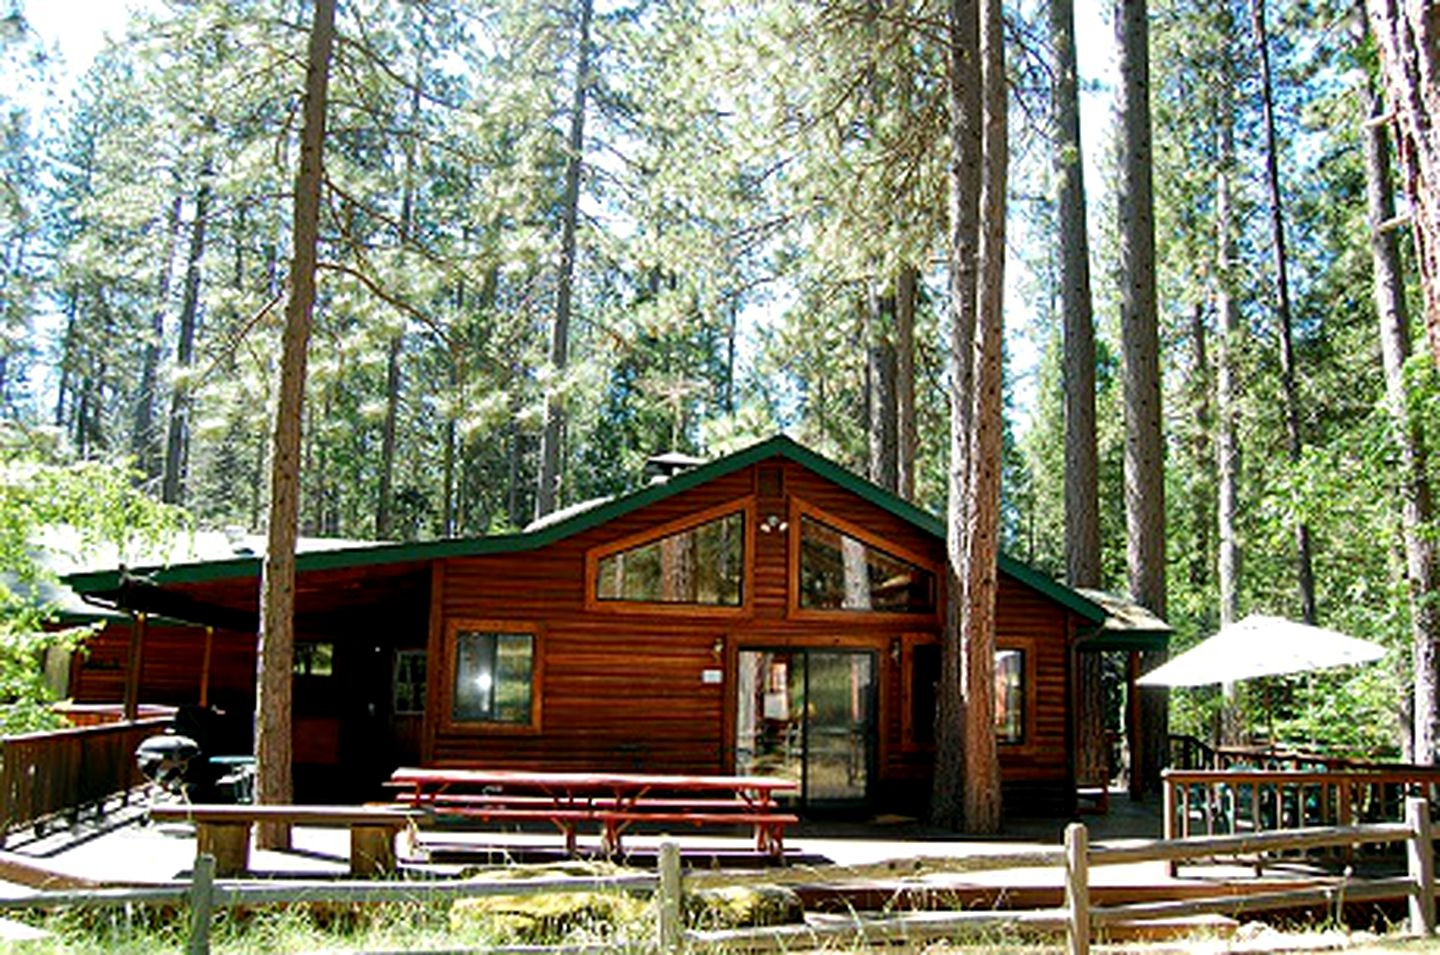 Cabins (Wawona, California, United States)